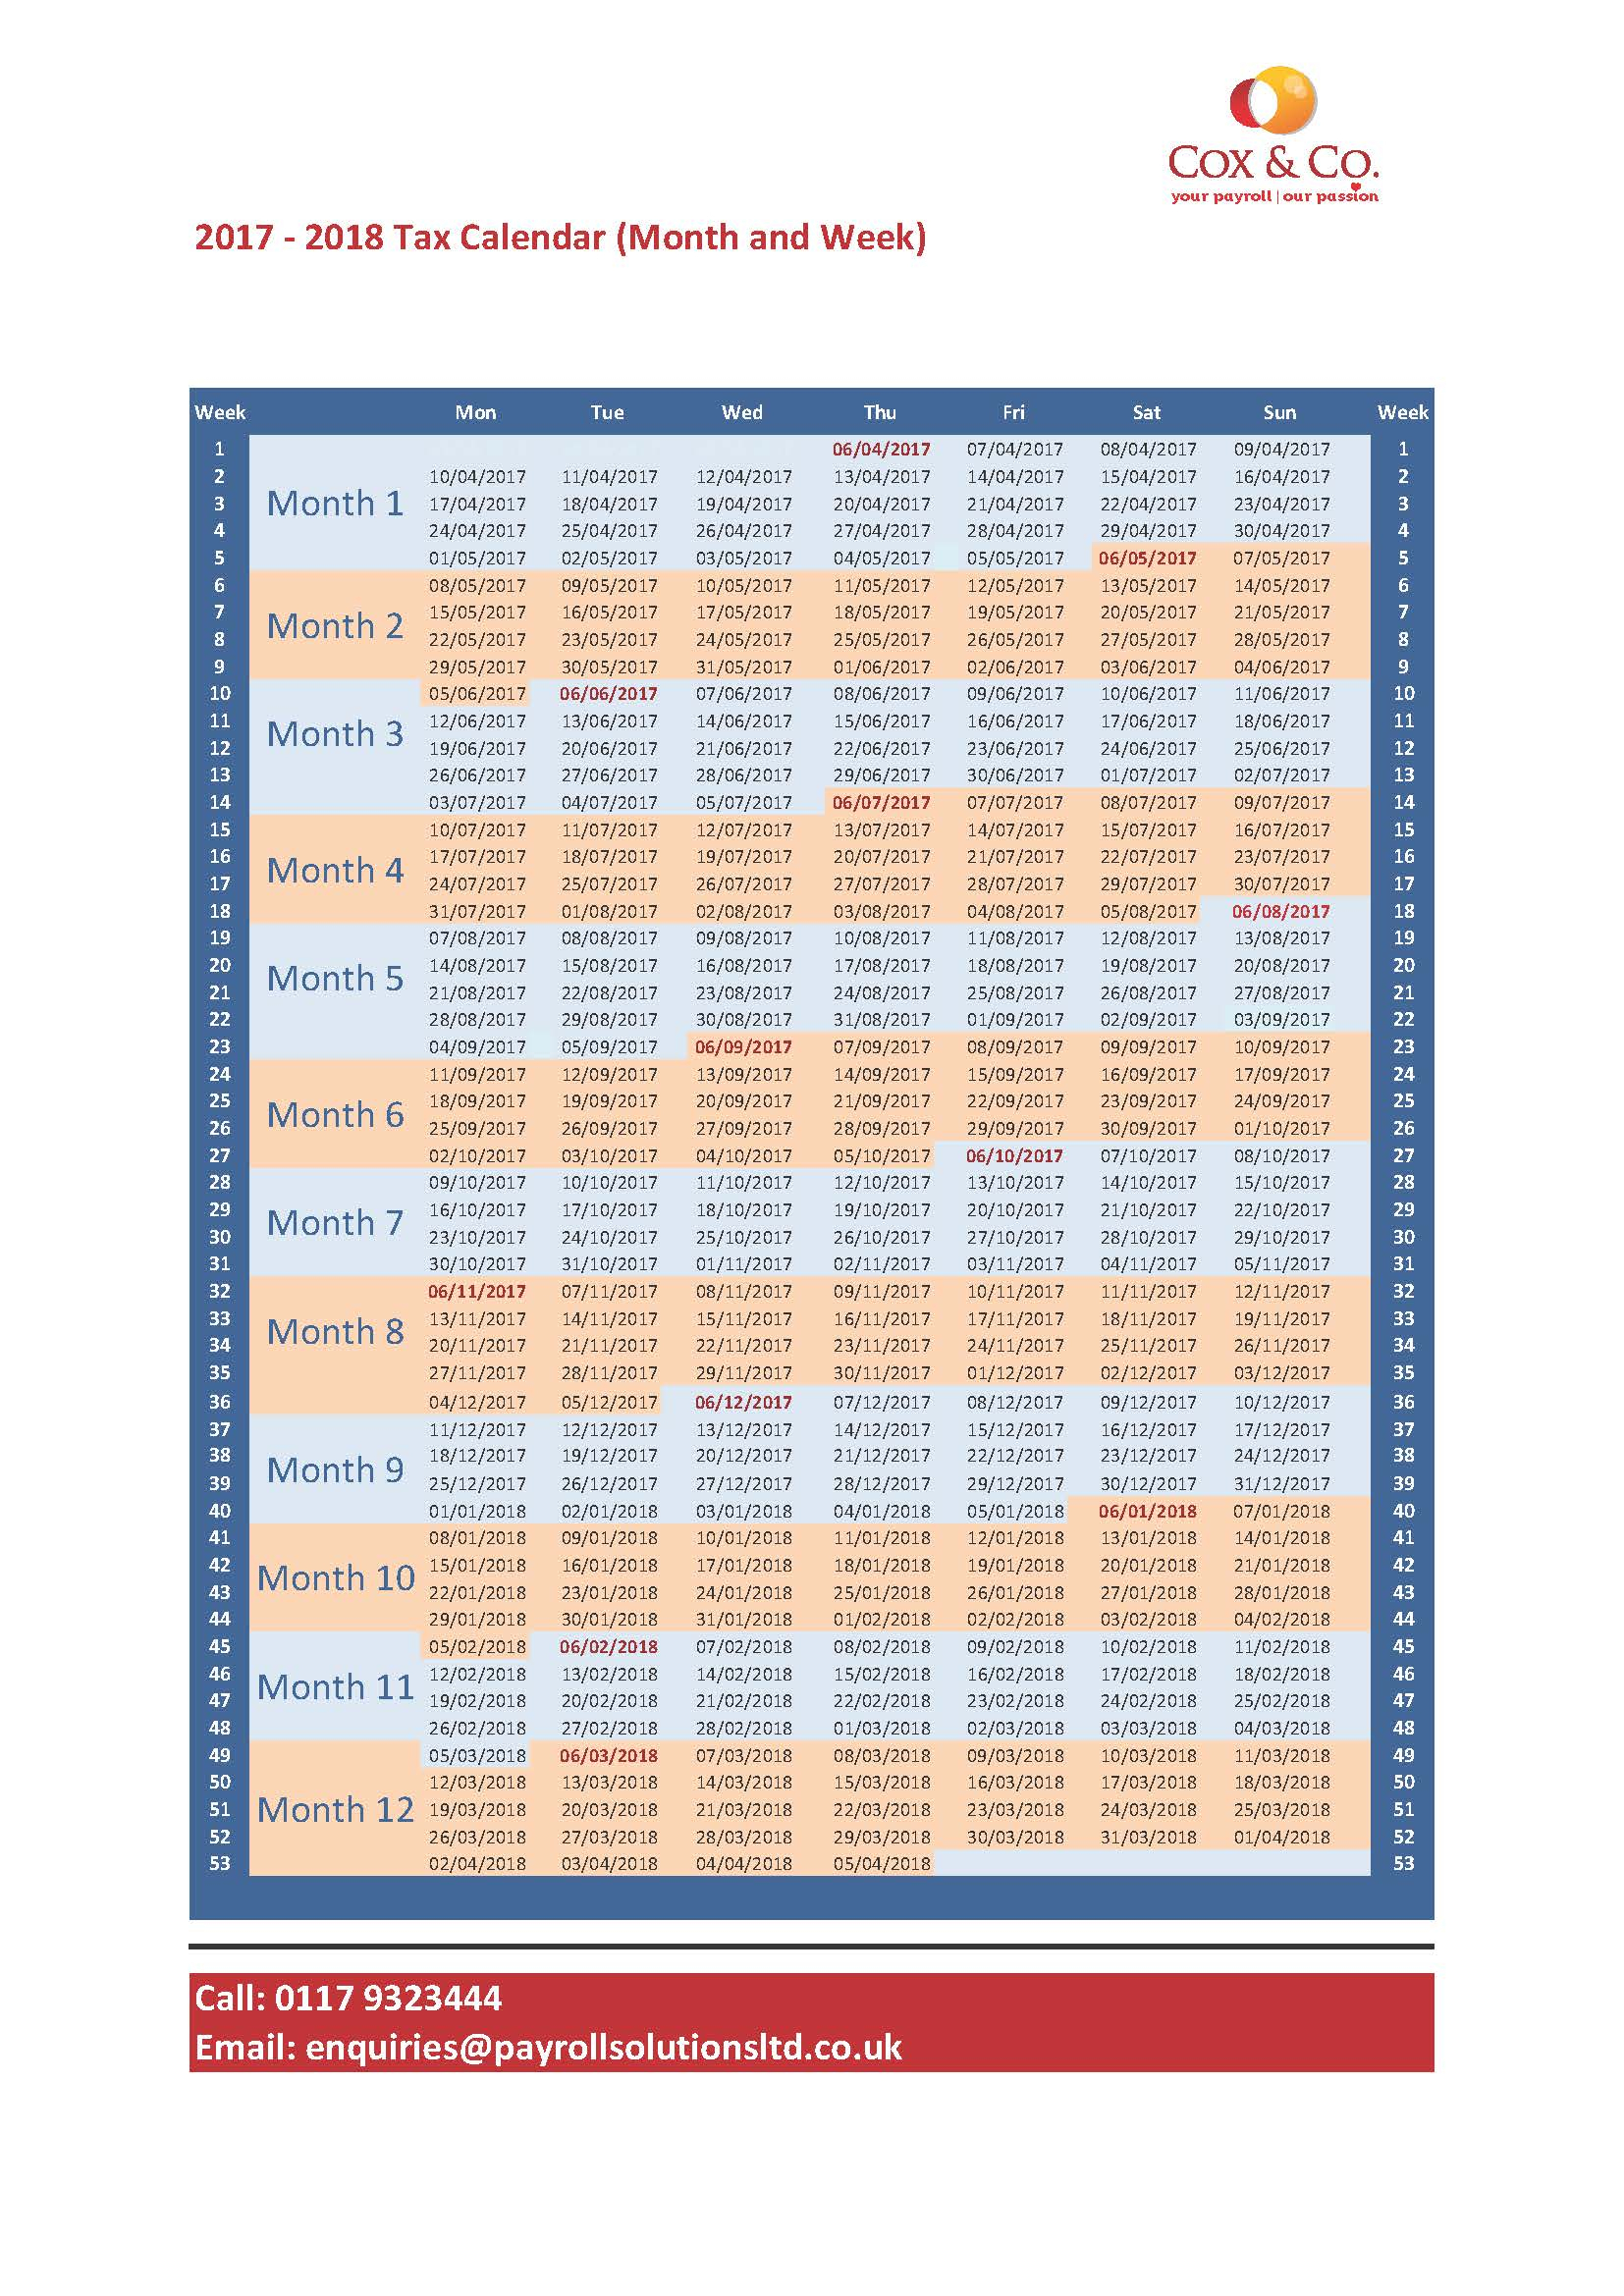 Free Tax Week & Month Payroll Calendar -